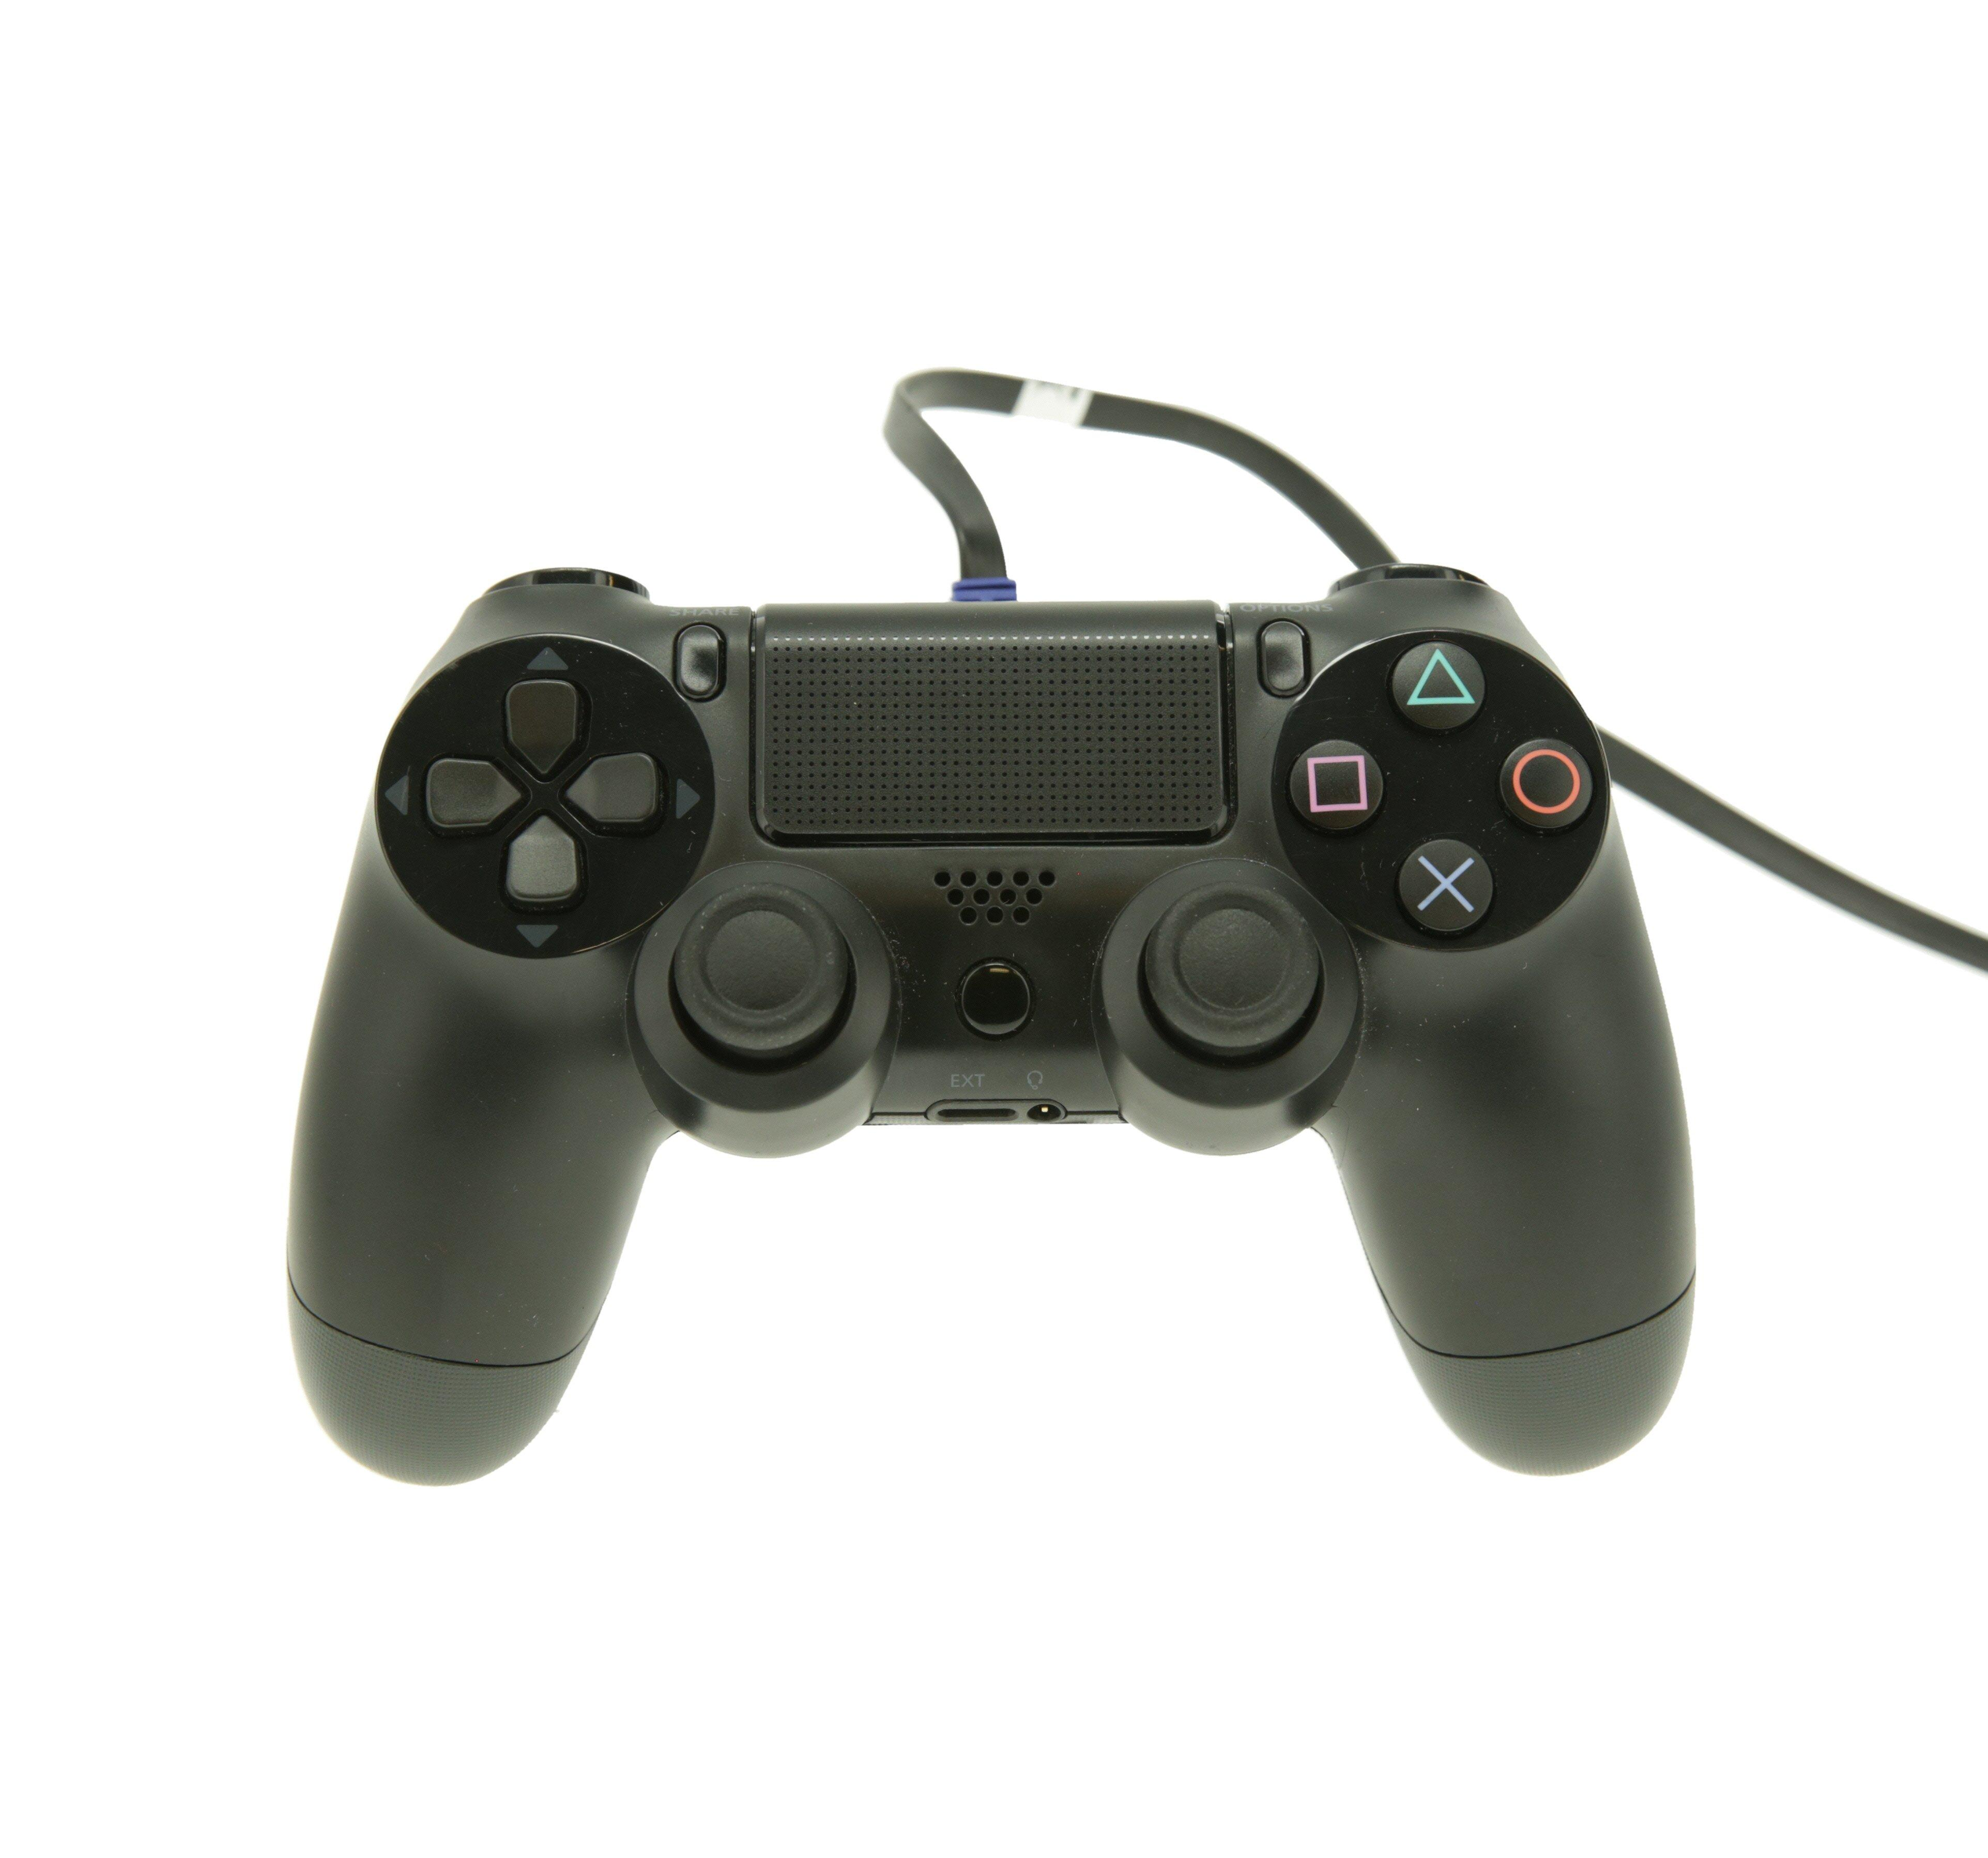 Playstation 4 Wired Controller Any Used Playstation 4 Gamestop